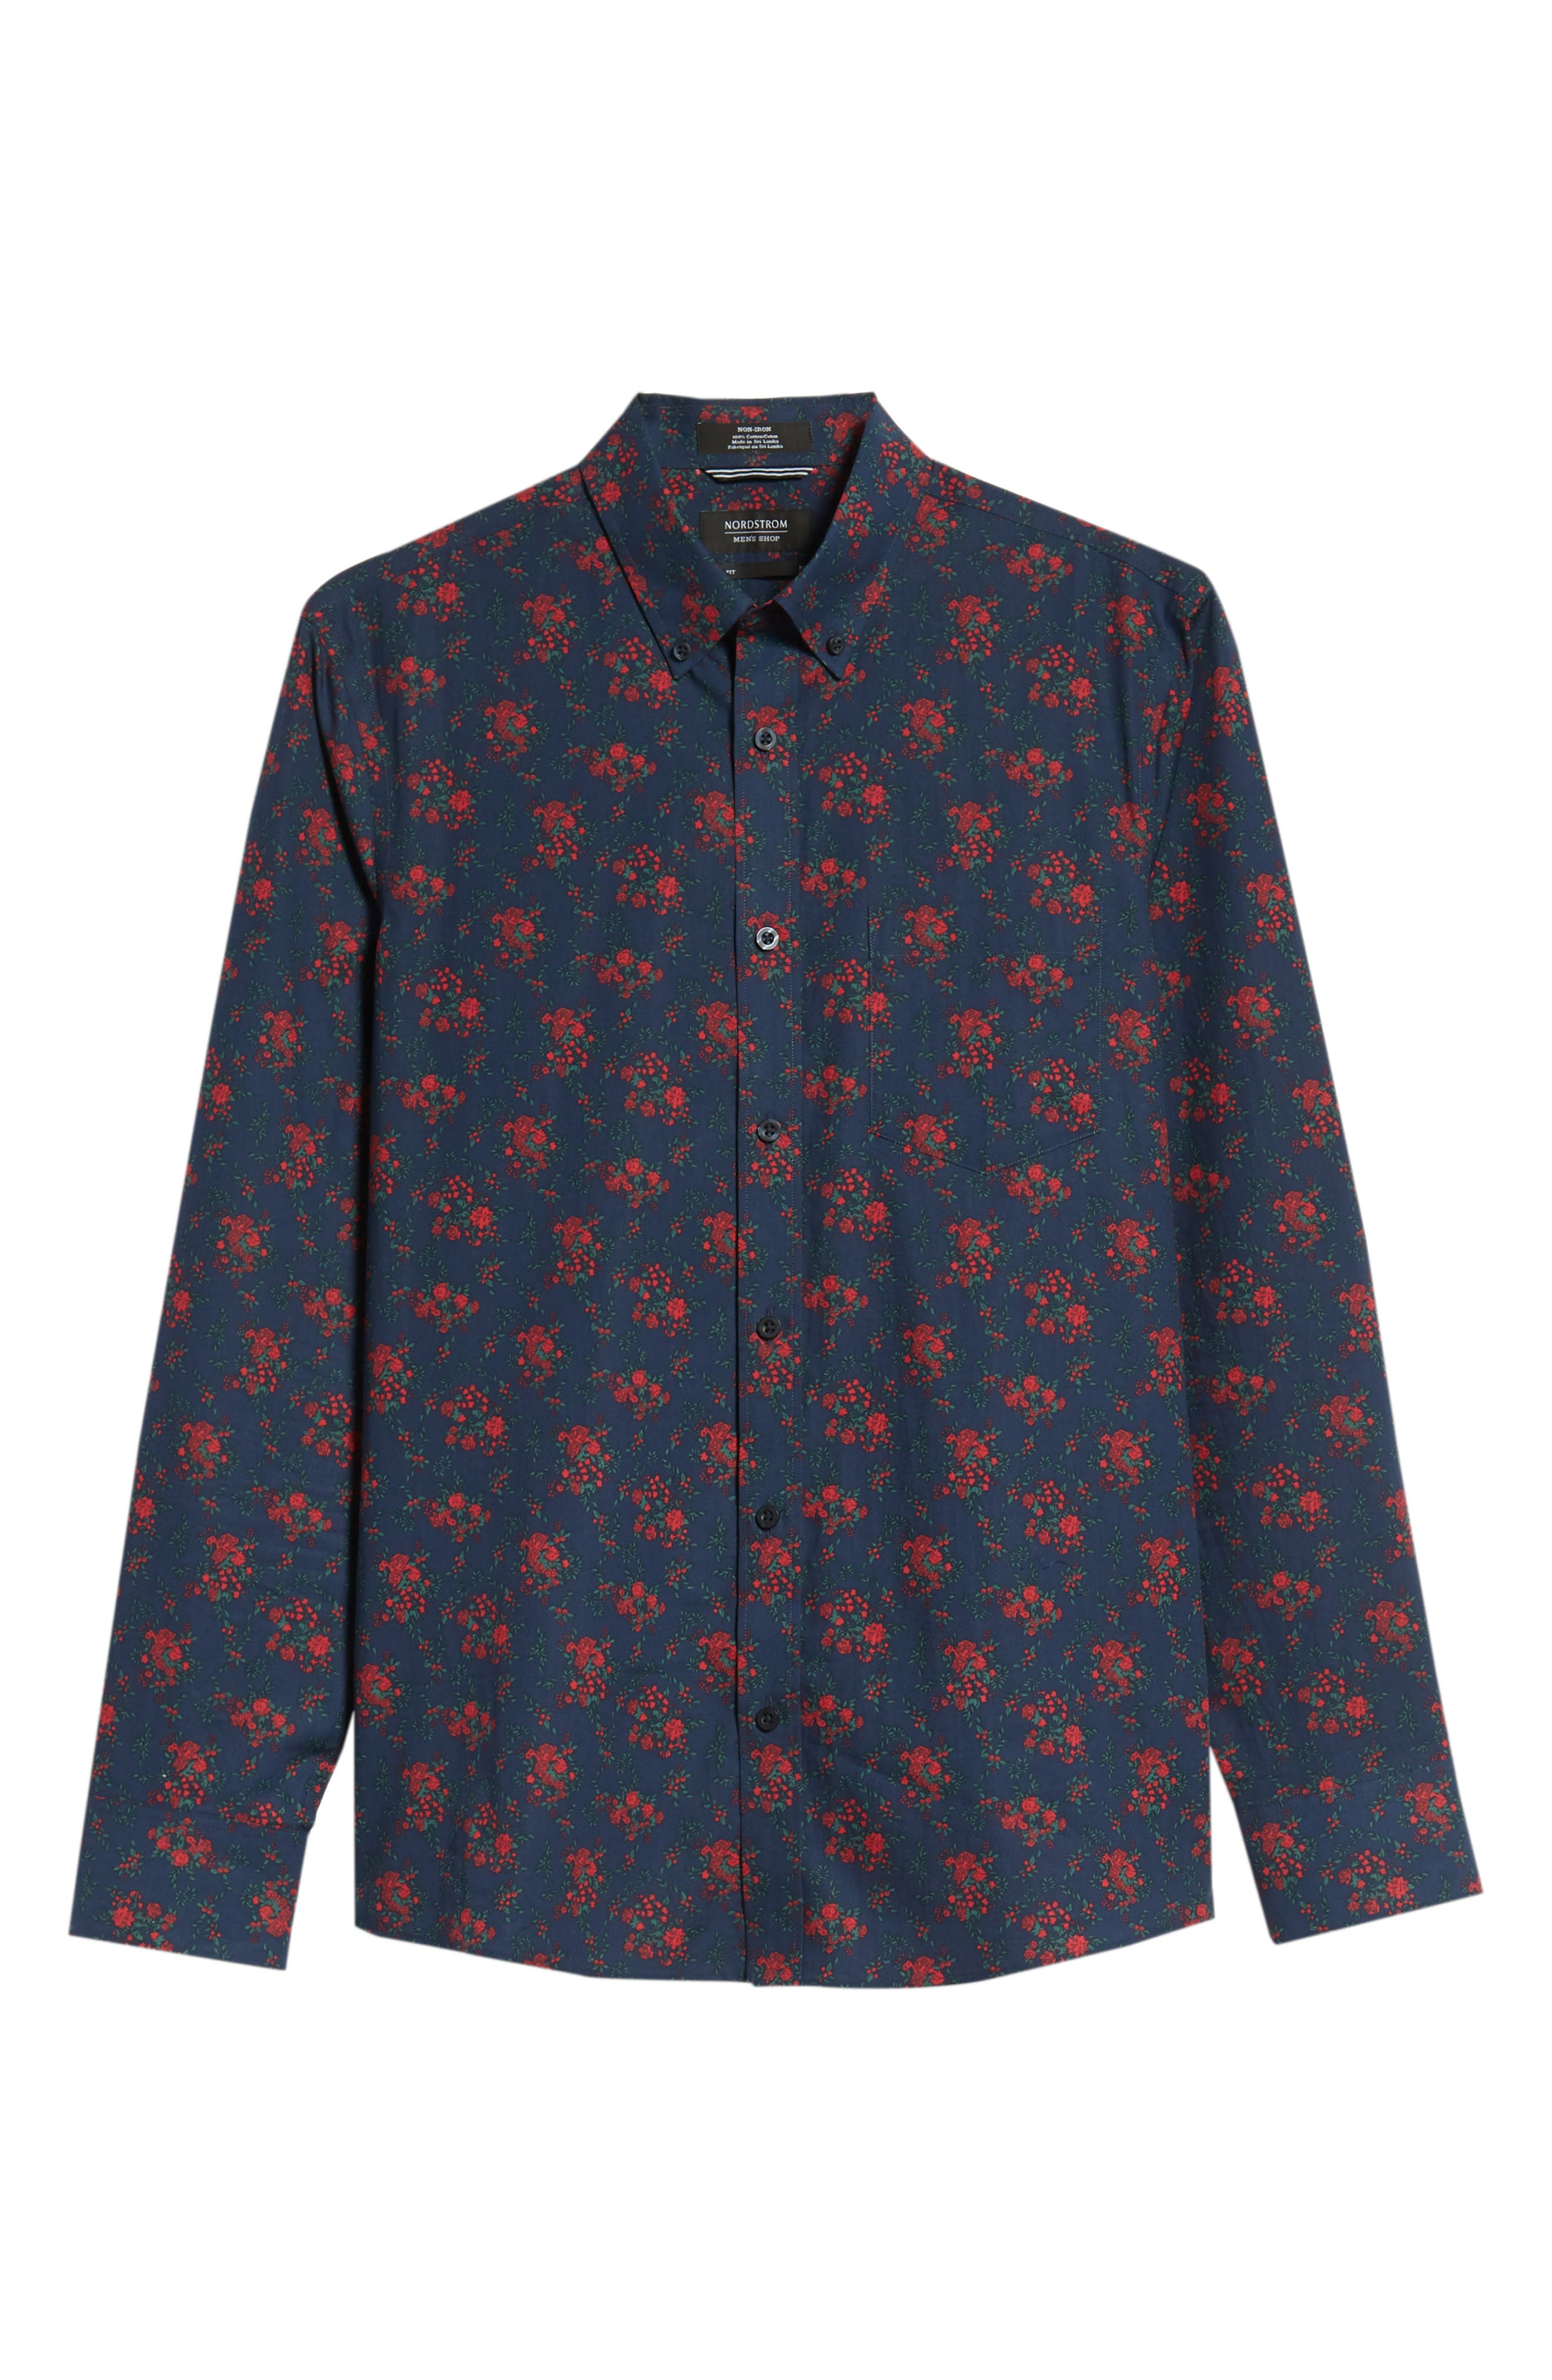 Slim Fit Print No-Iron Sport Shirt,                             Alternate thumbnail 5, color,                             NAVY NIGHT RED FLORAL